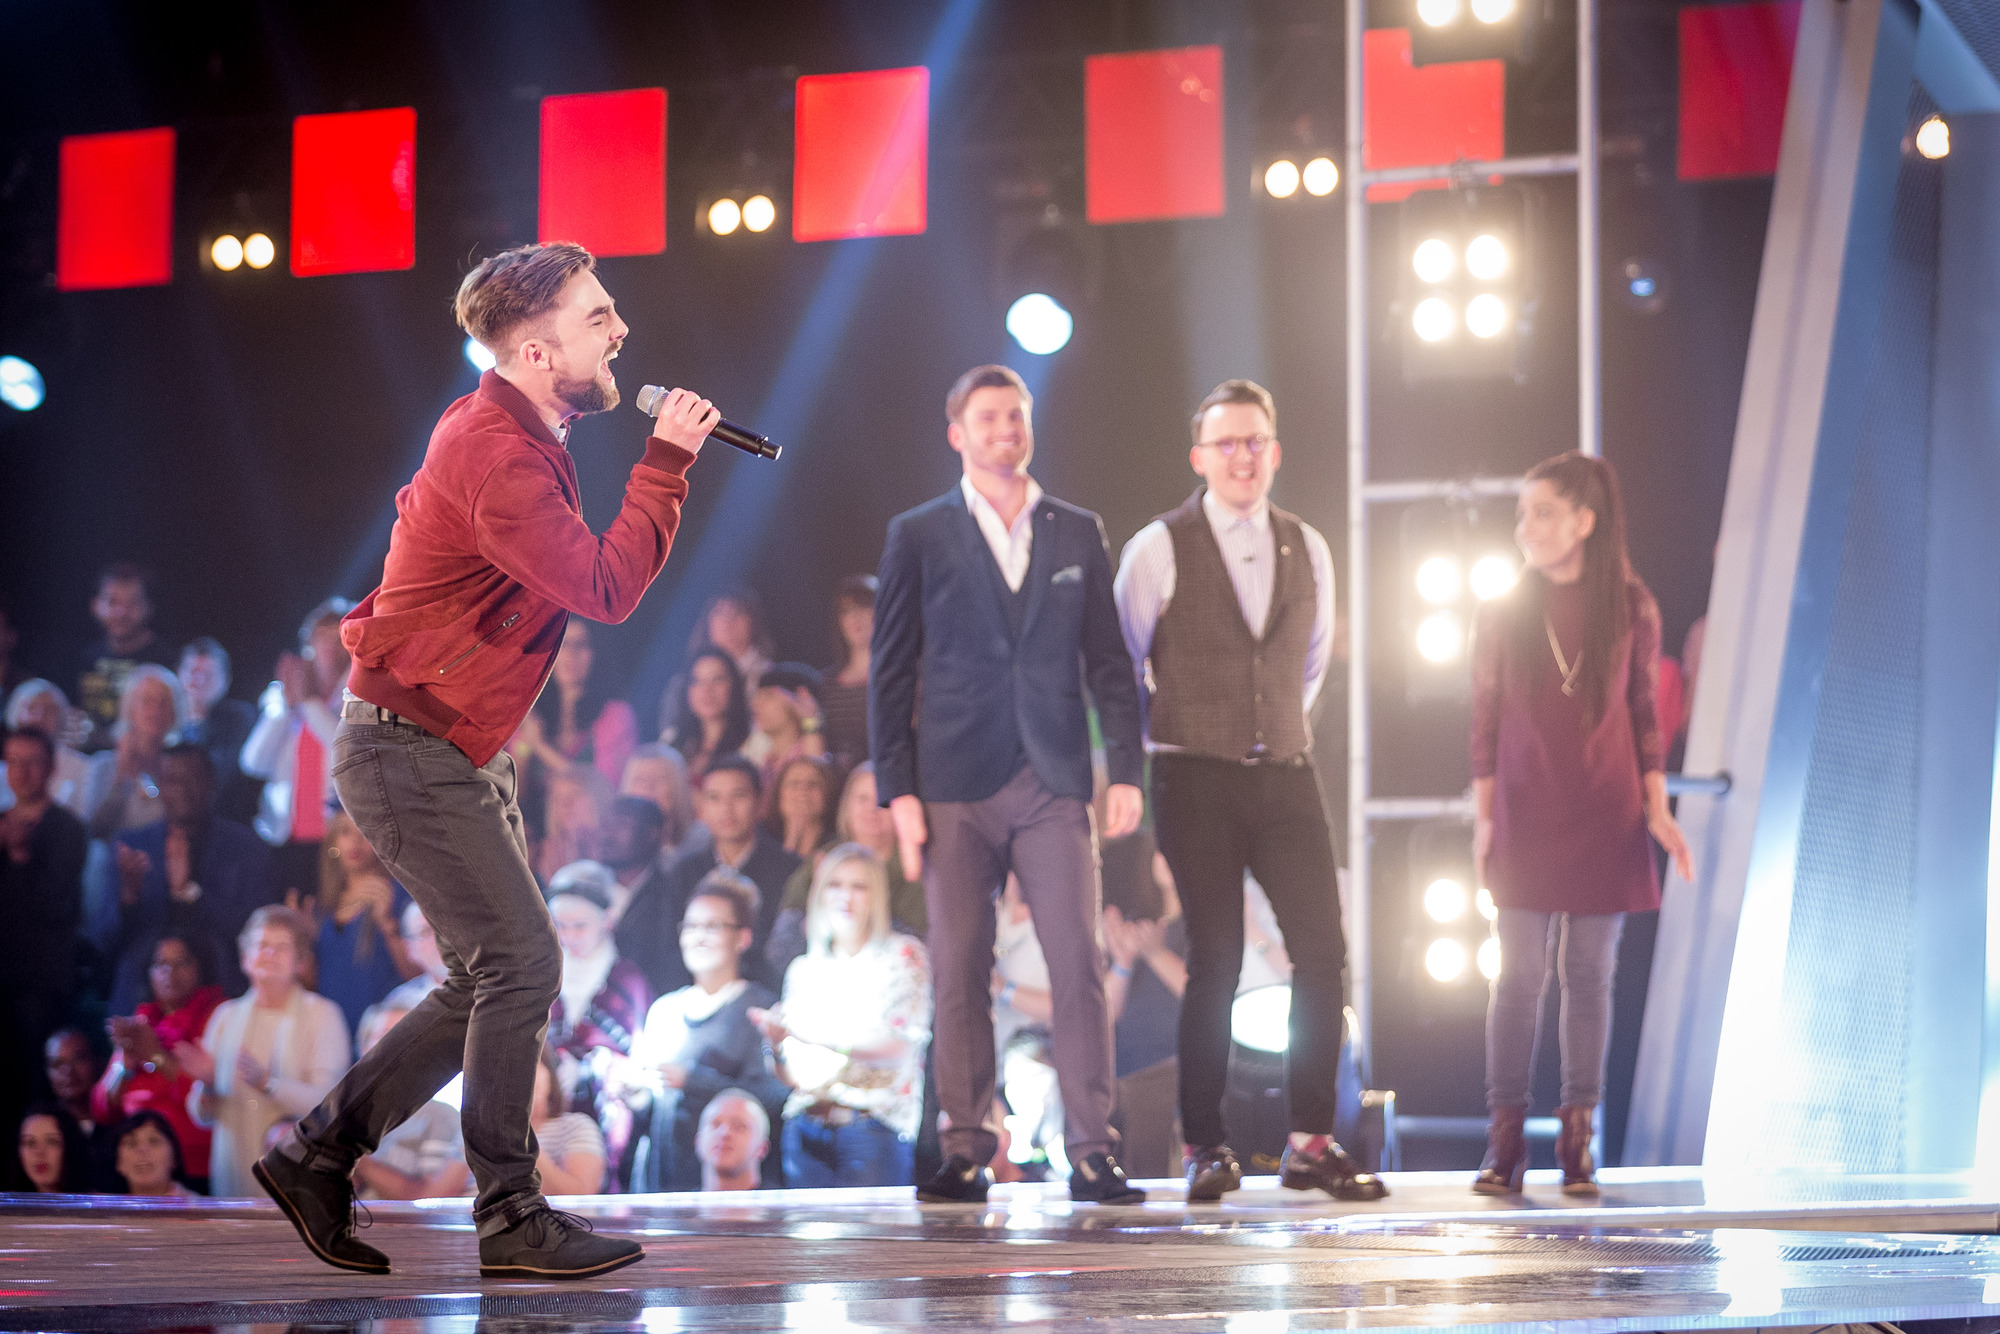 The Voice 2015: 10 things we noticed during the second knockout round